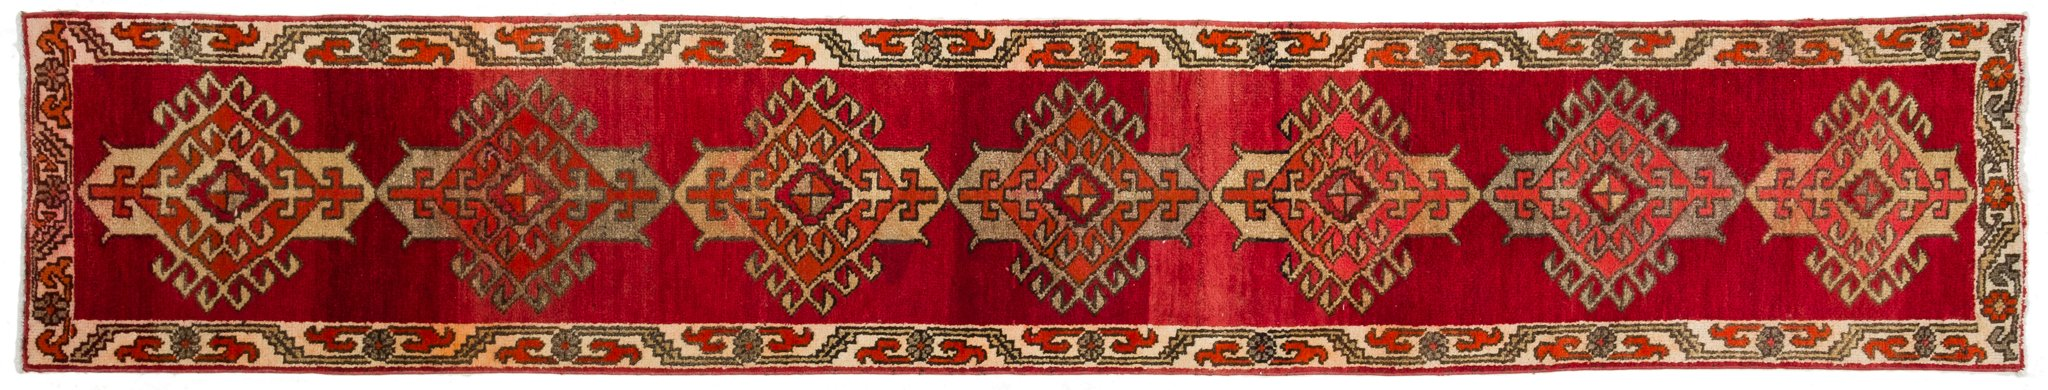 Vintage Turkish Runner Rug Aliki